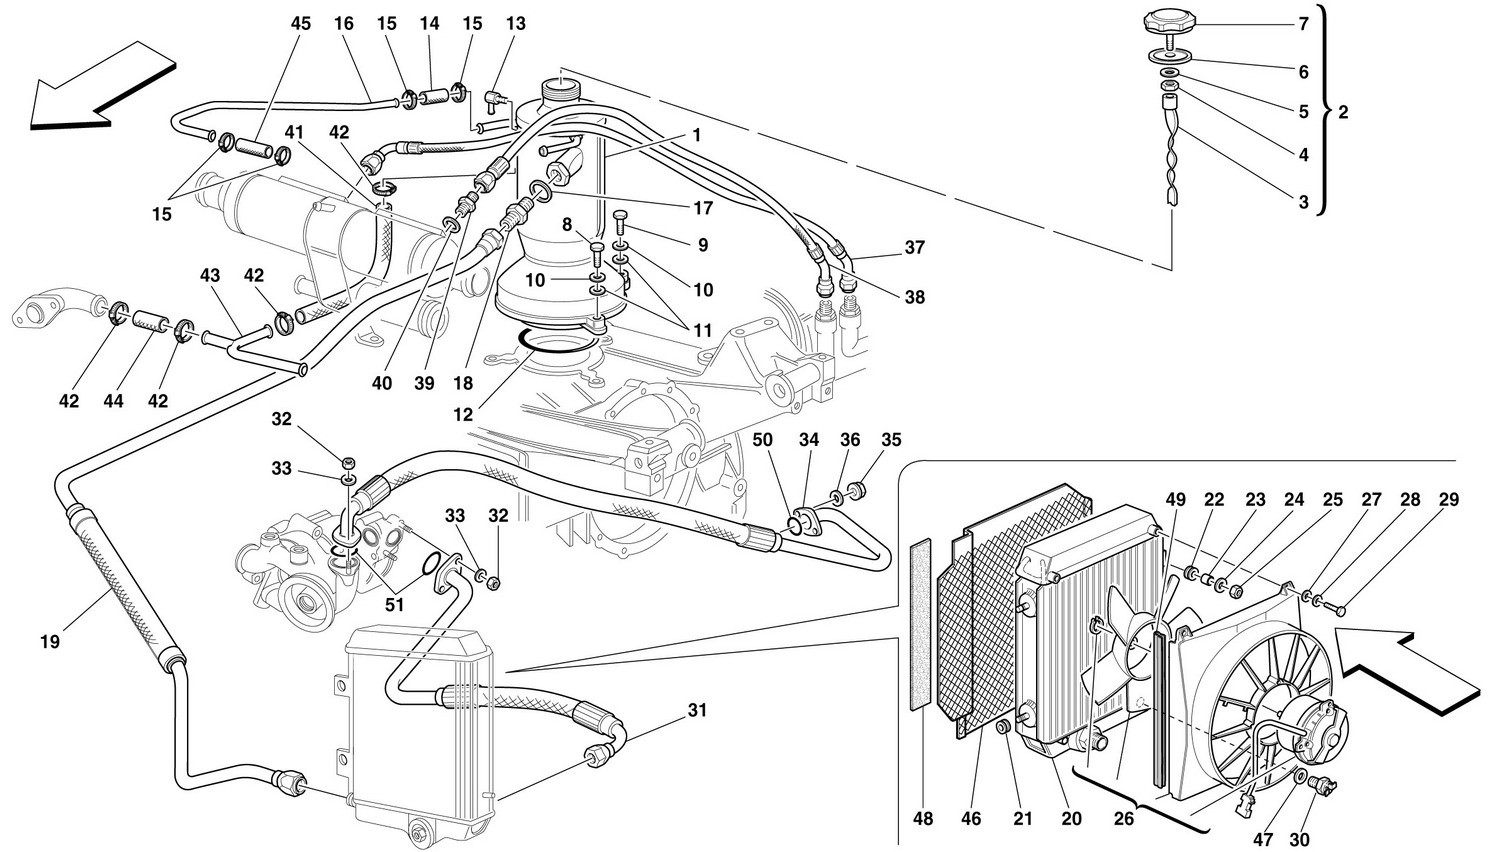 LUBRICATION SYSTEM - RADIATOR, BLOW-BY SYSTEM AND PIPES